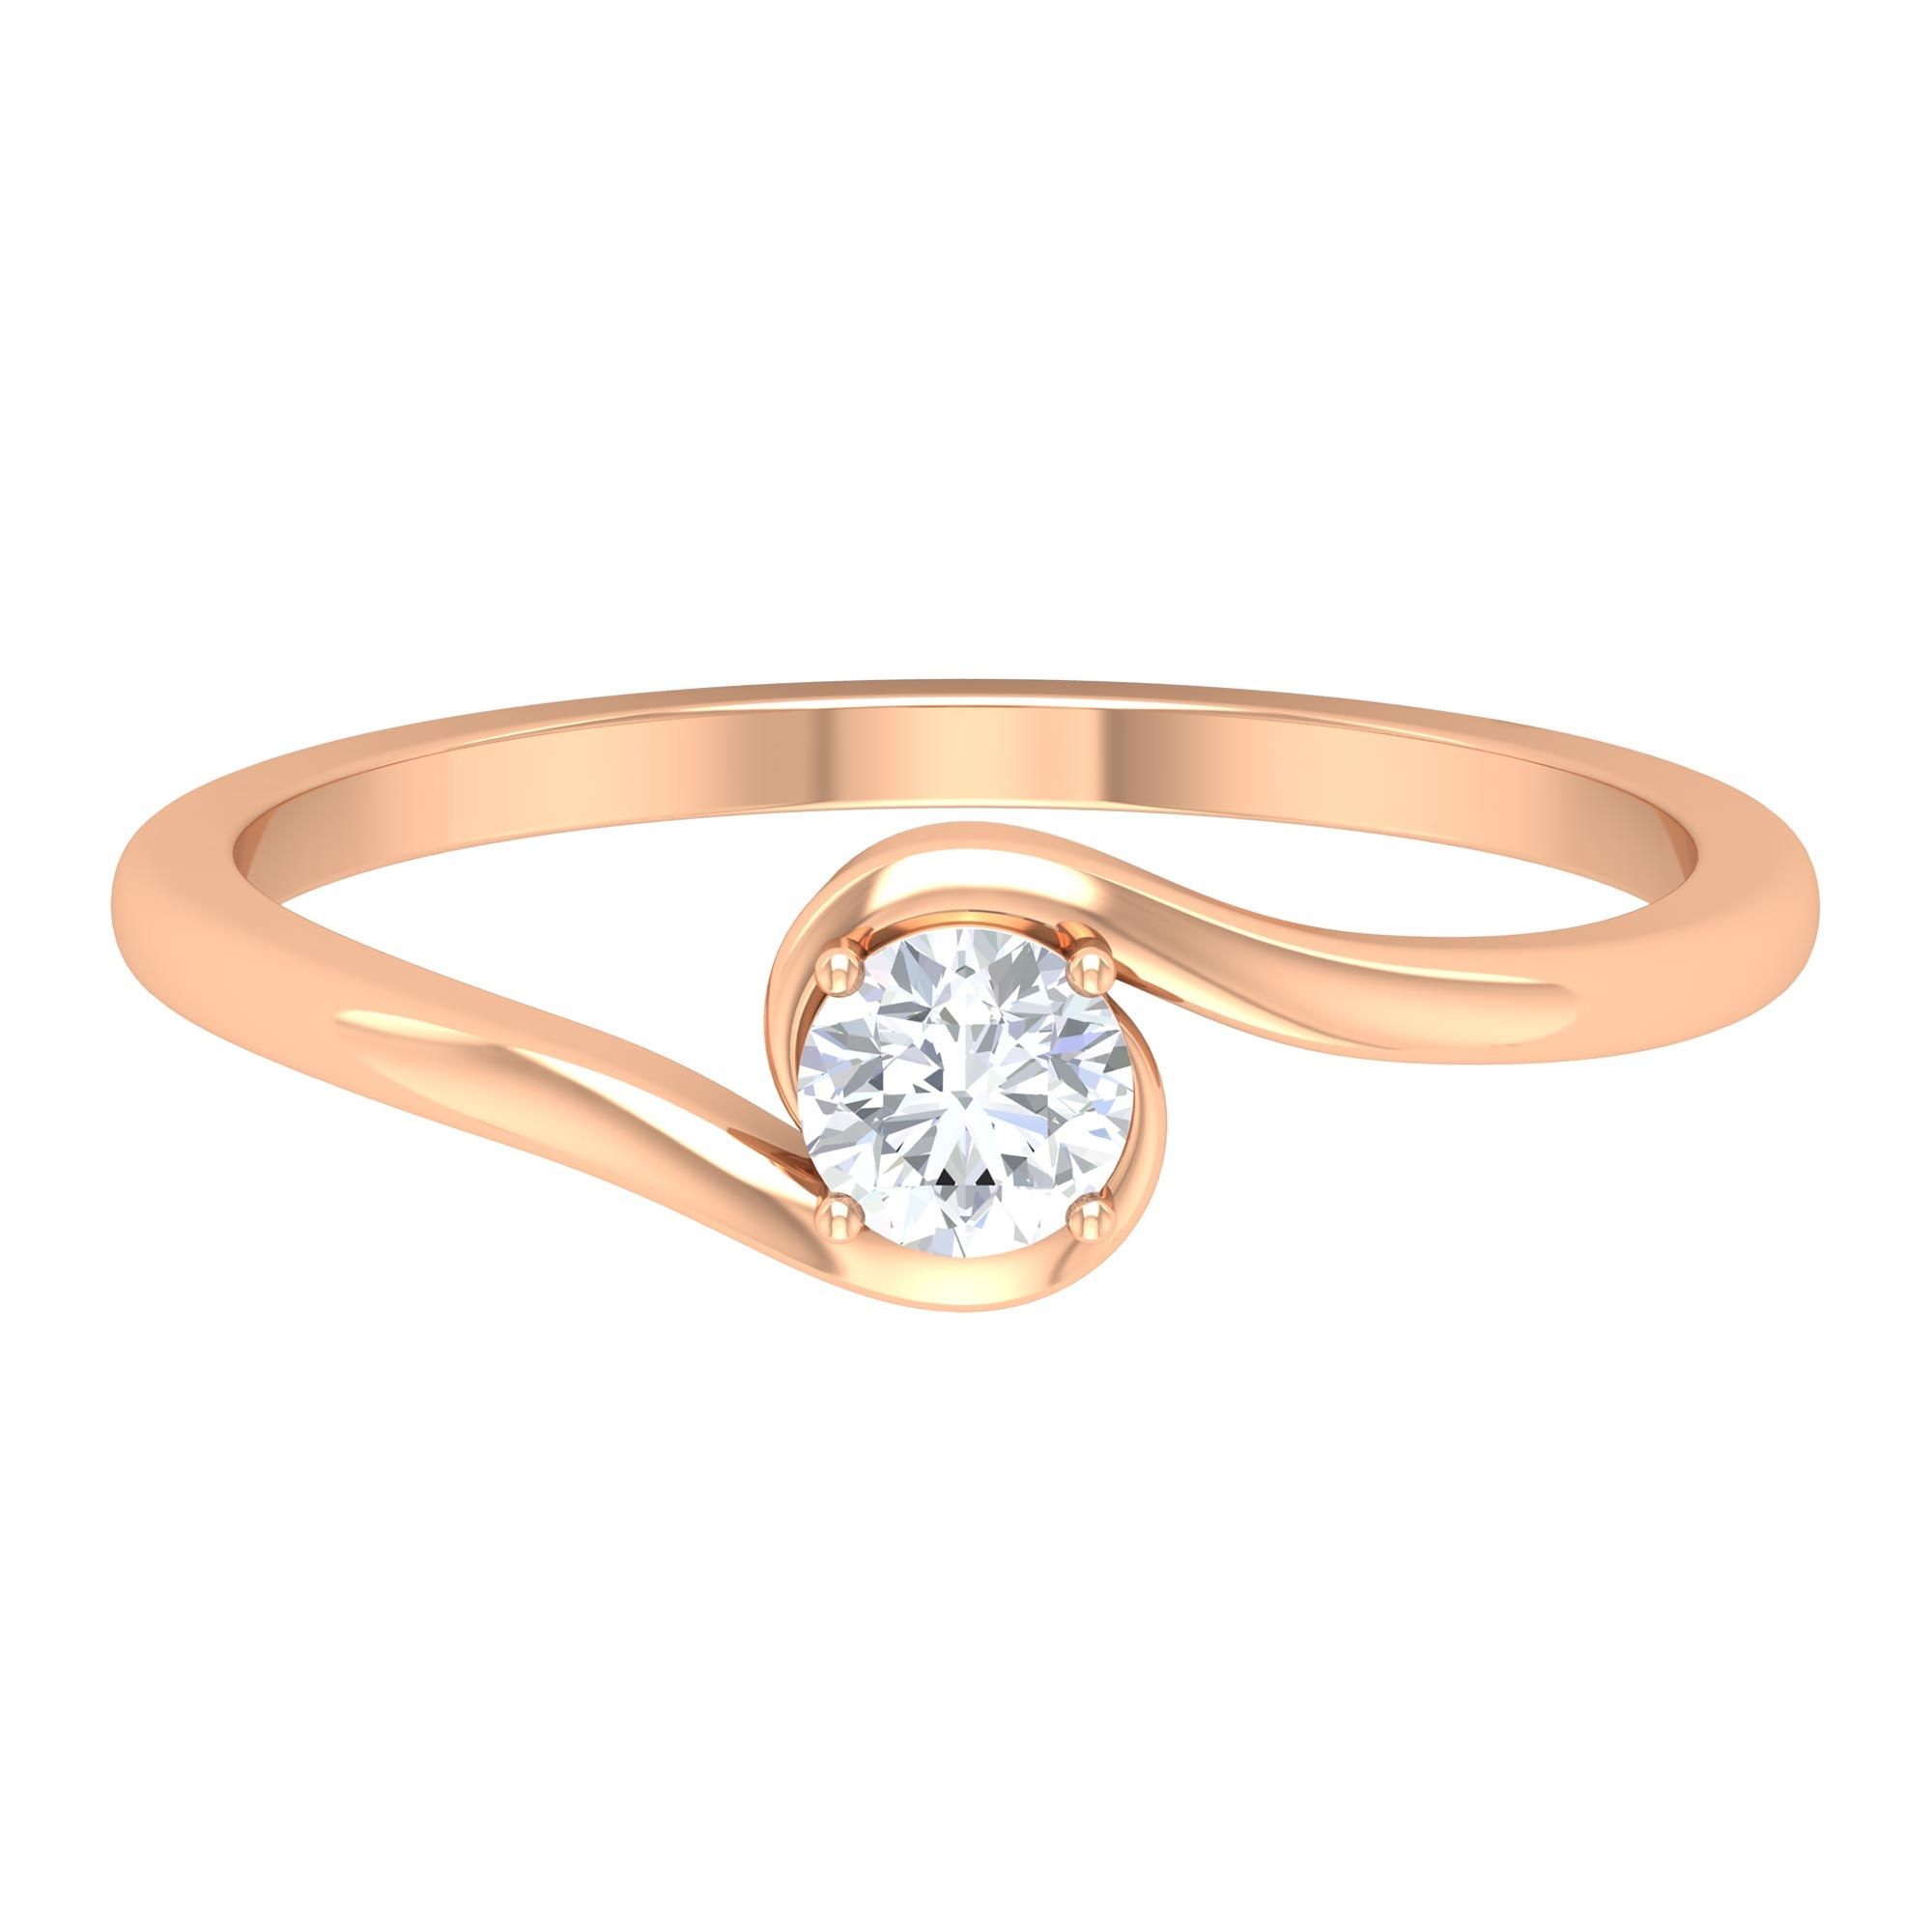 4 MM Round Cut Diamond Solitaire Ring in 4 Prong Setting with Bypass Shank